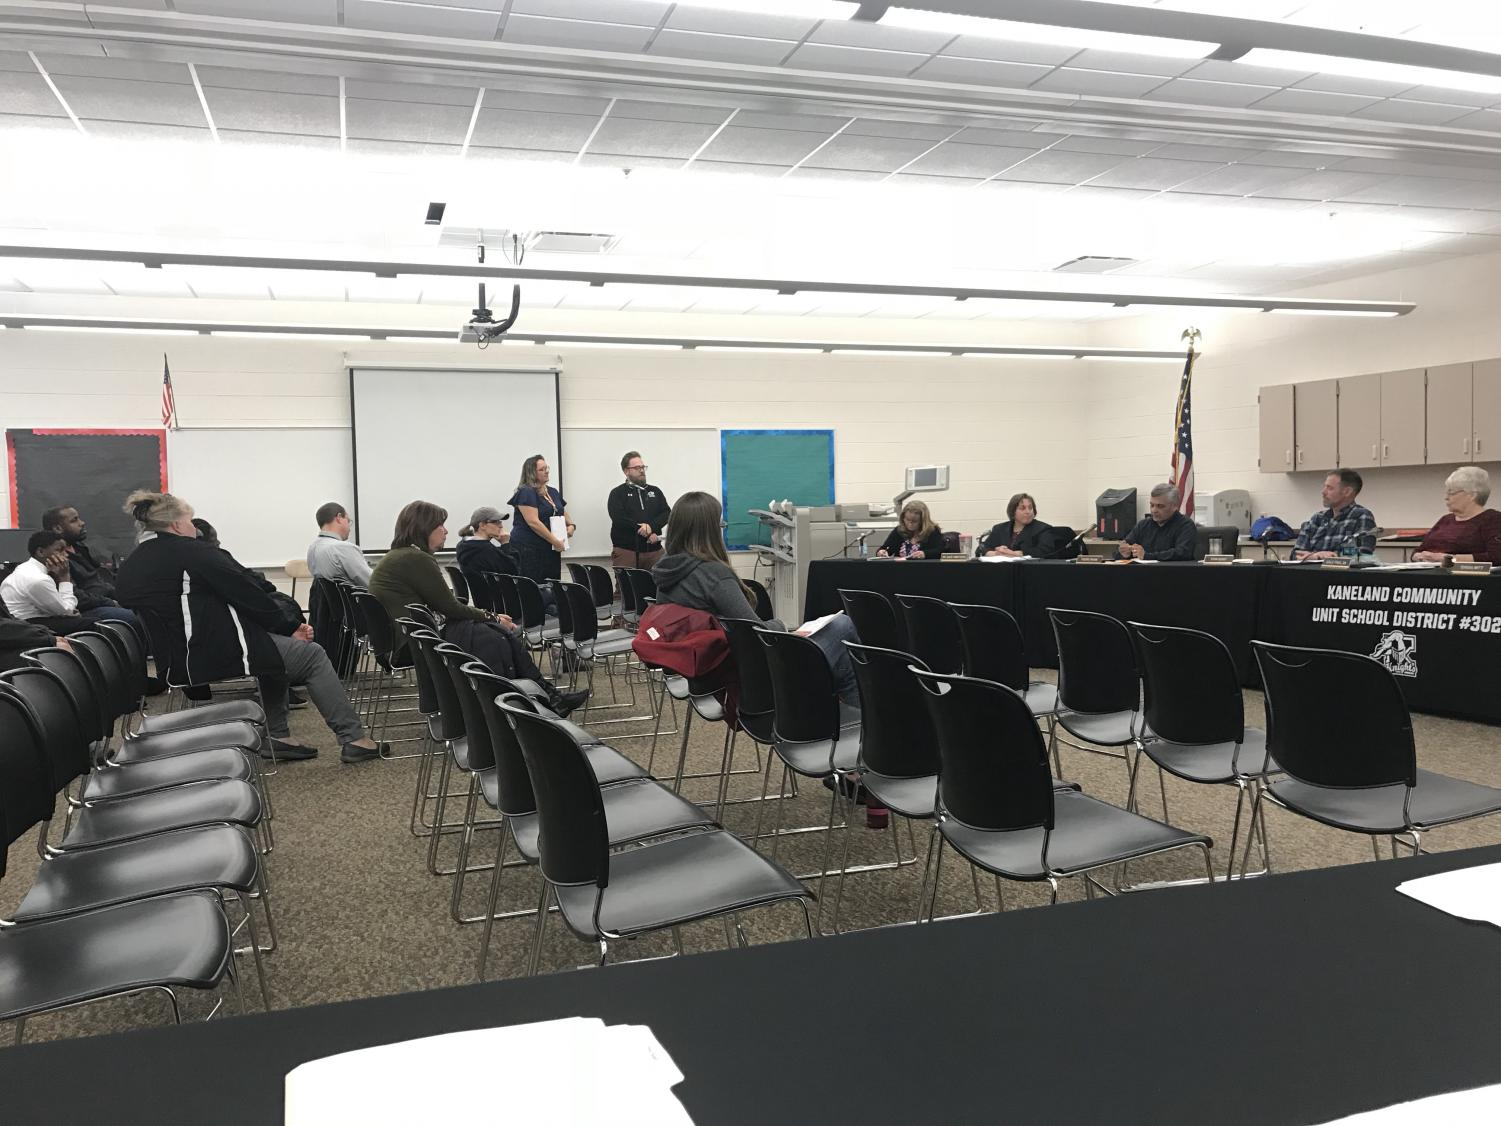 Illinois State Scholarship recipients were honored and a new map was introduced to help teachers plan their lessons at the board meeting on February 26.